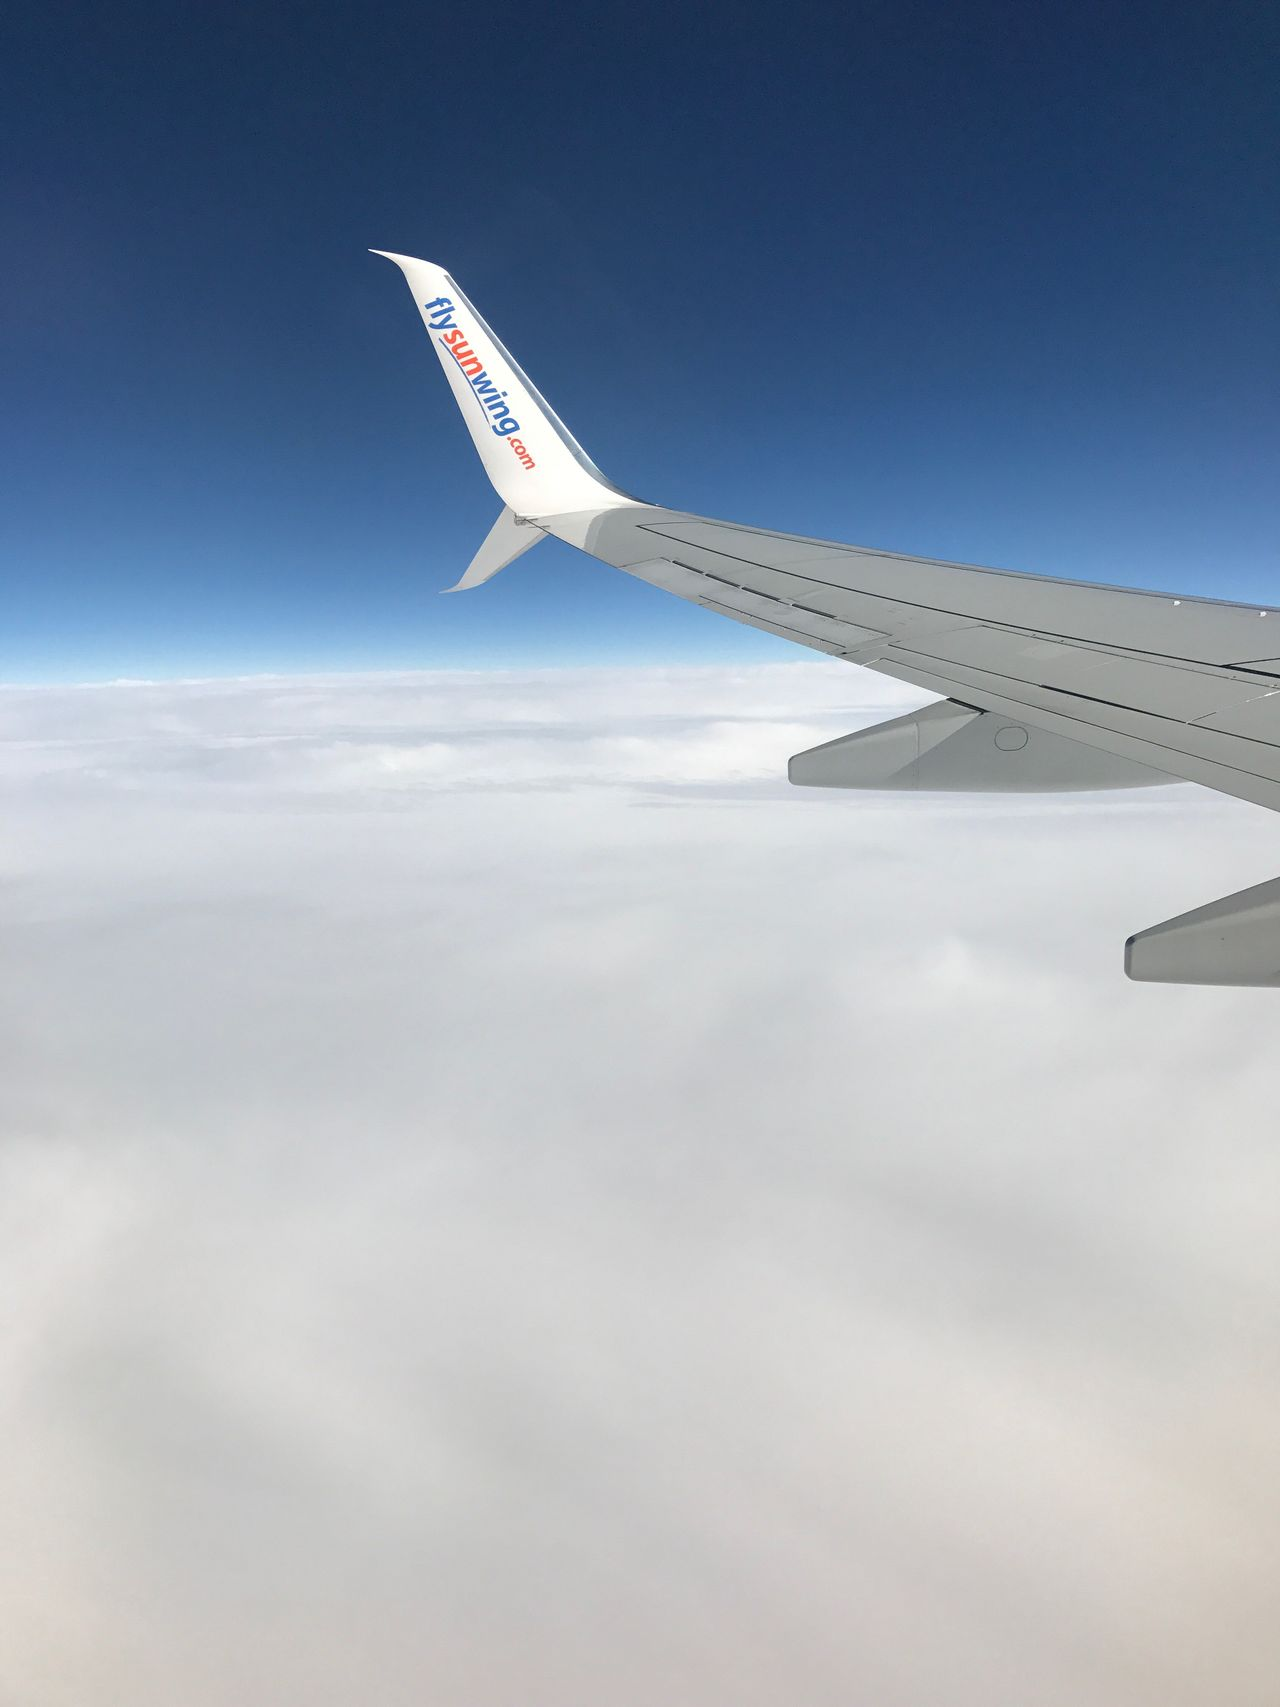 Airplane Sky Journey Transportation Flying Airplane Wing Cloud - Sky Air Vehicle Mode Of Transport Travel Nature Blue No People Aircraft Wing Aerial View Day Outdoors Beauty In Nature